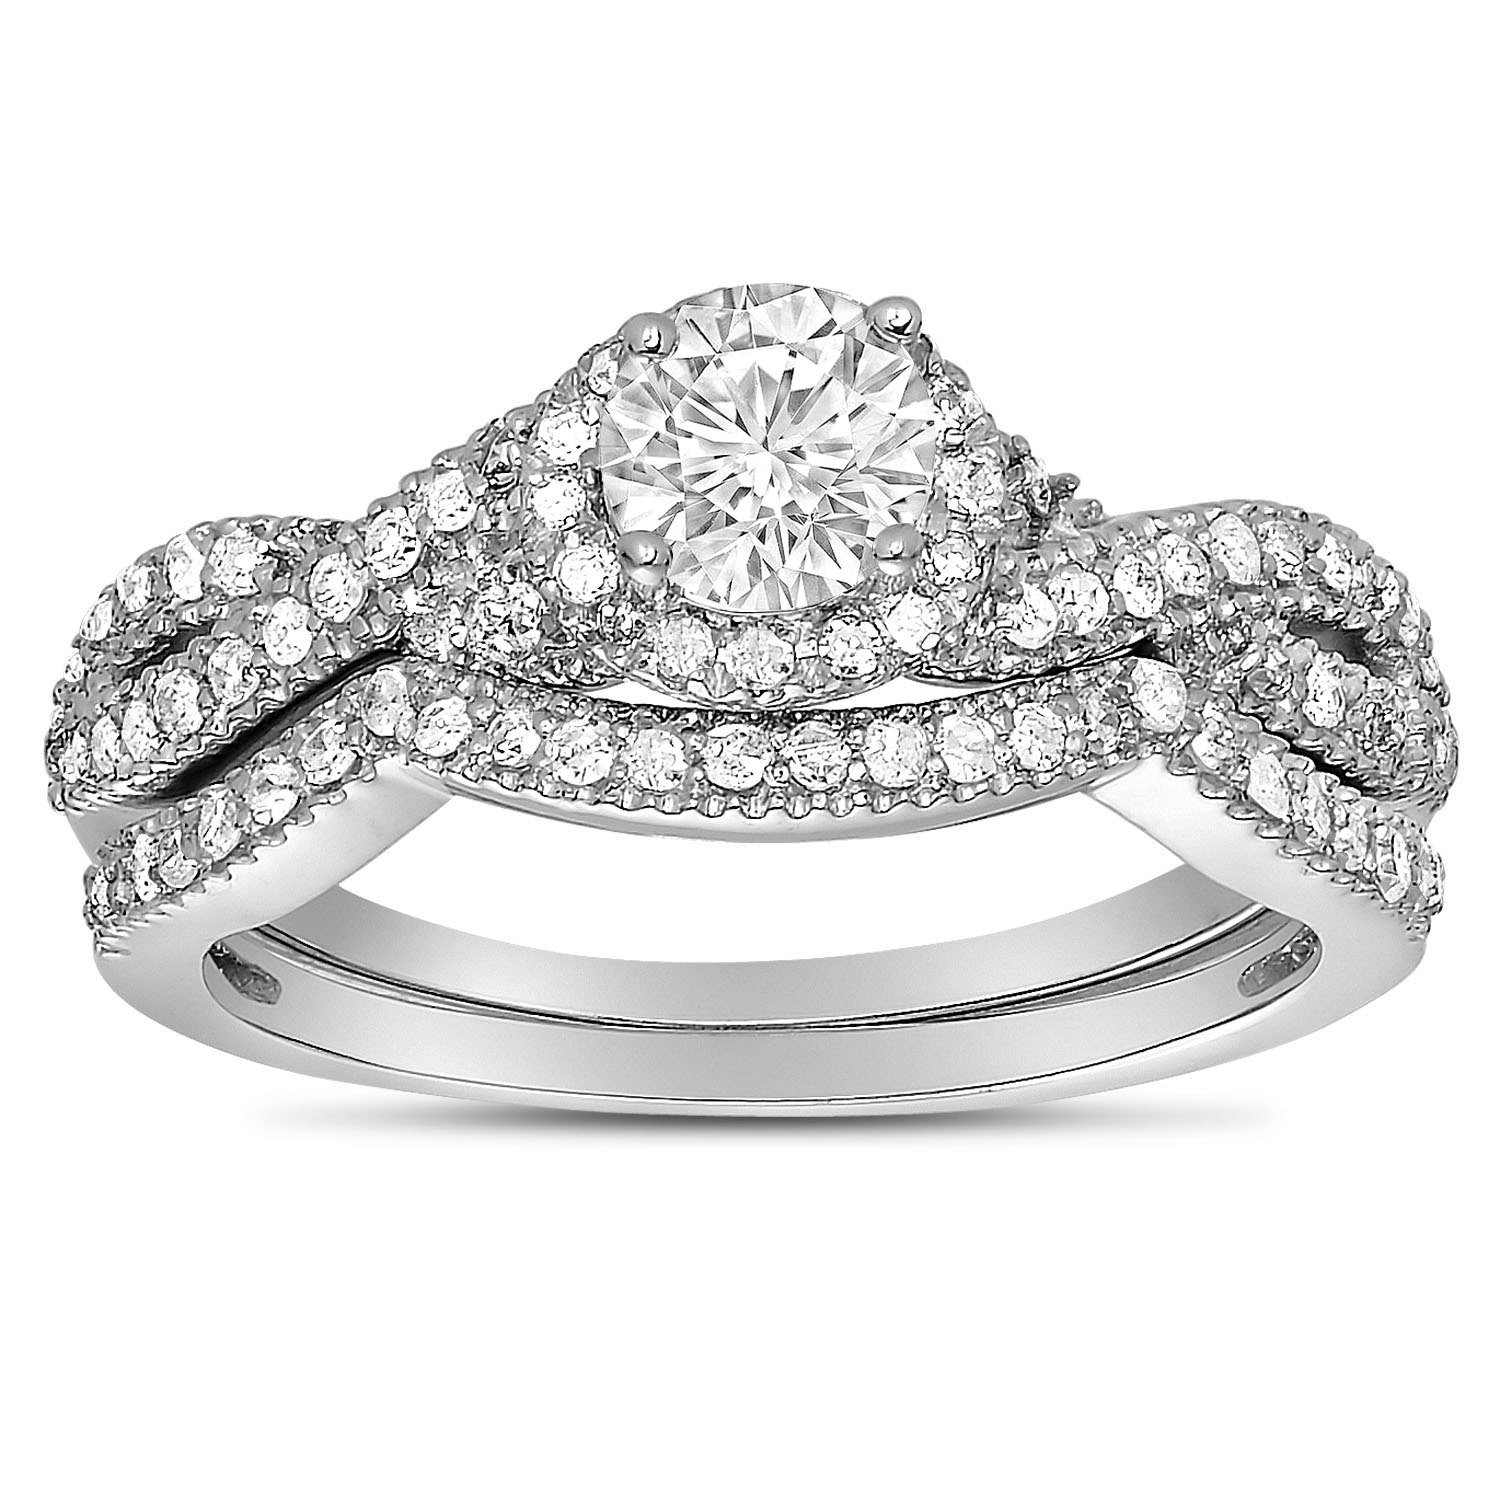 2 carat round diamond infinity wedding ring set in white gold for her - Wedding Rings Sets For Her